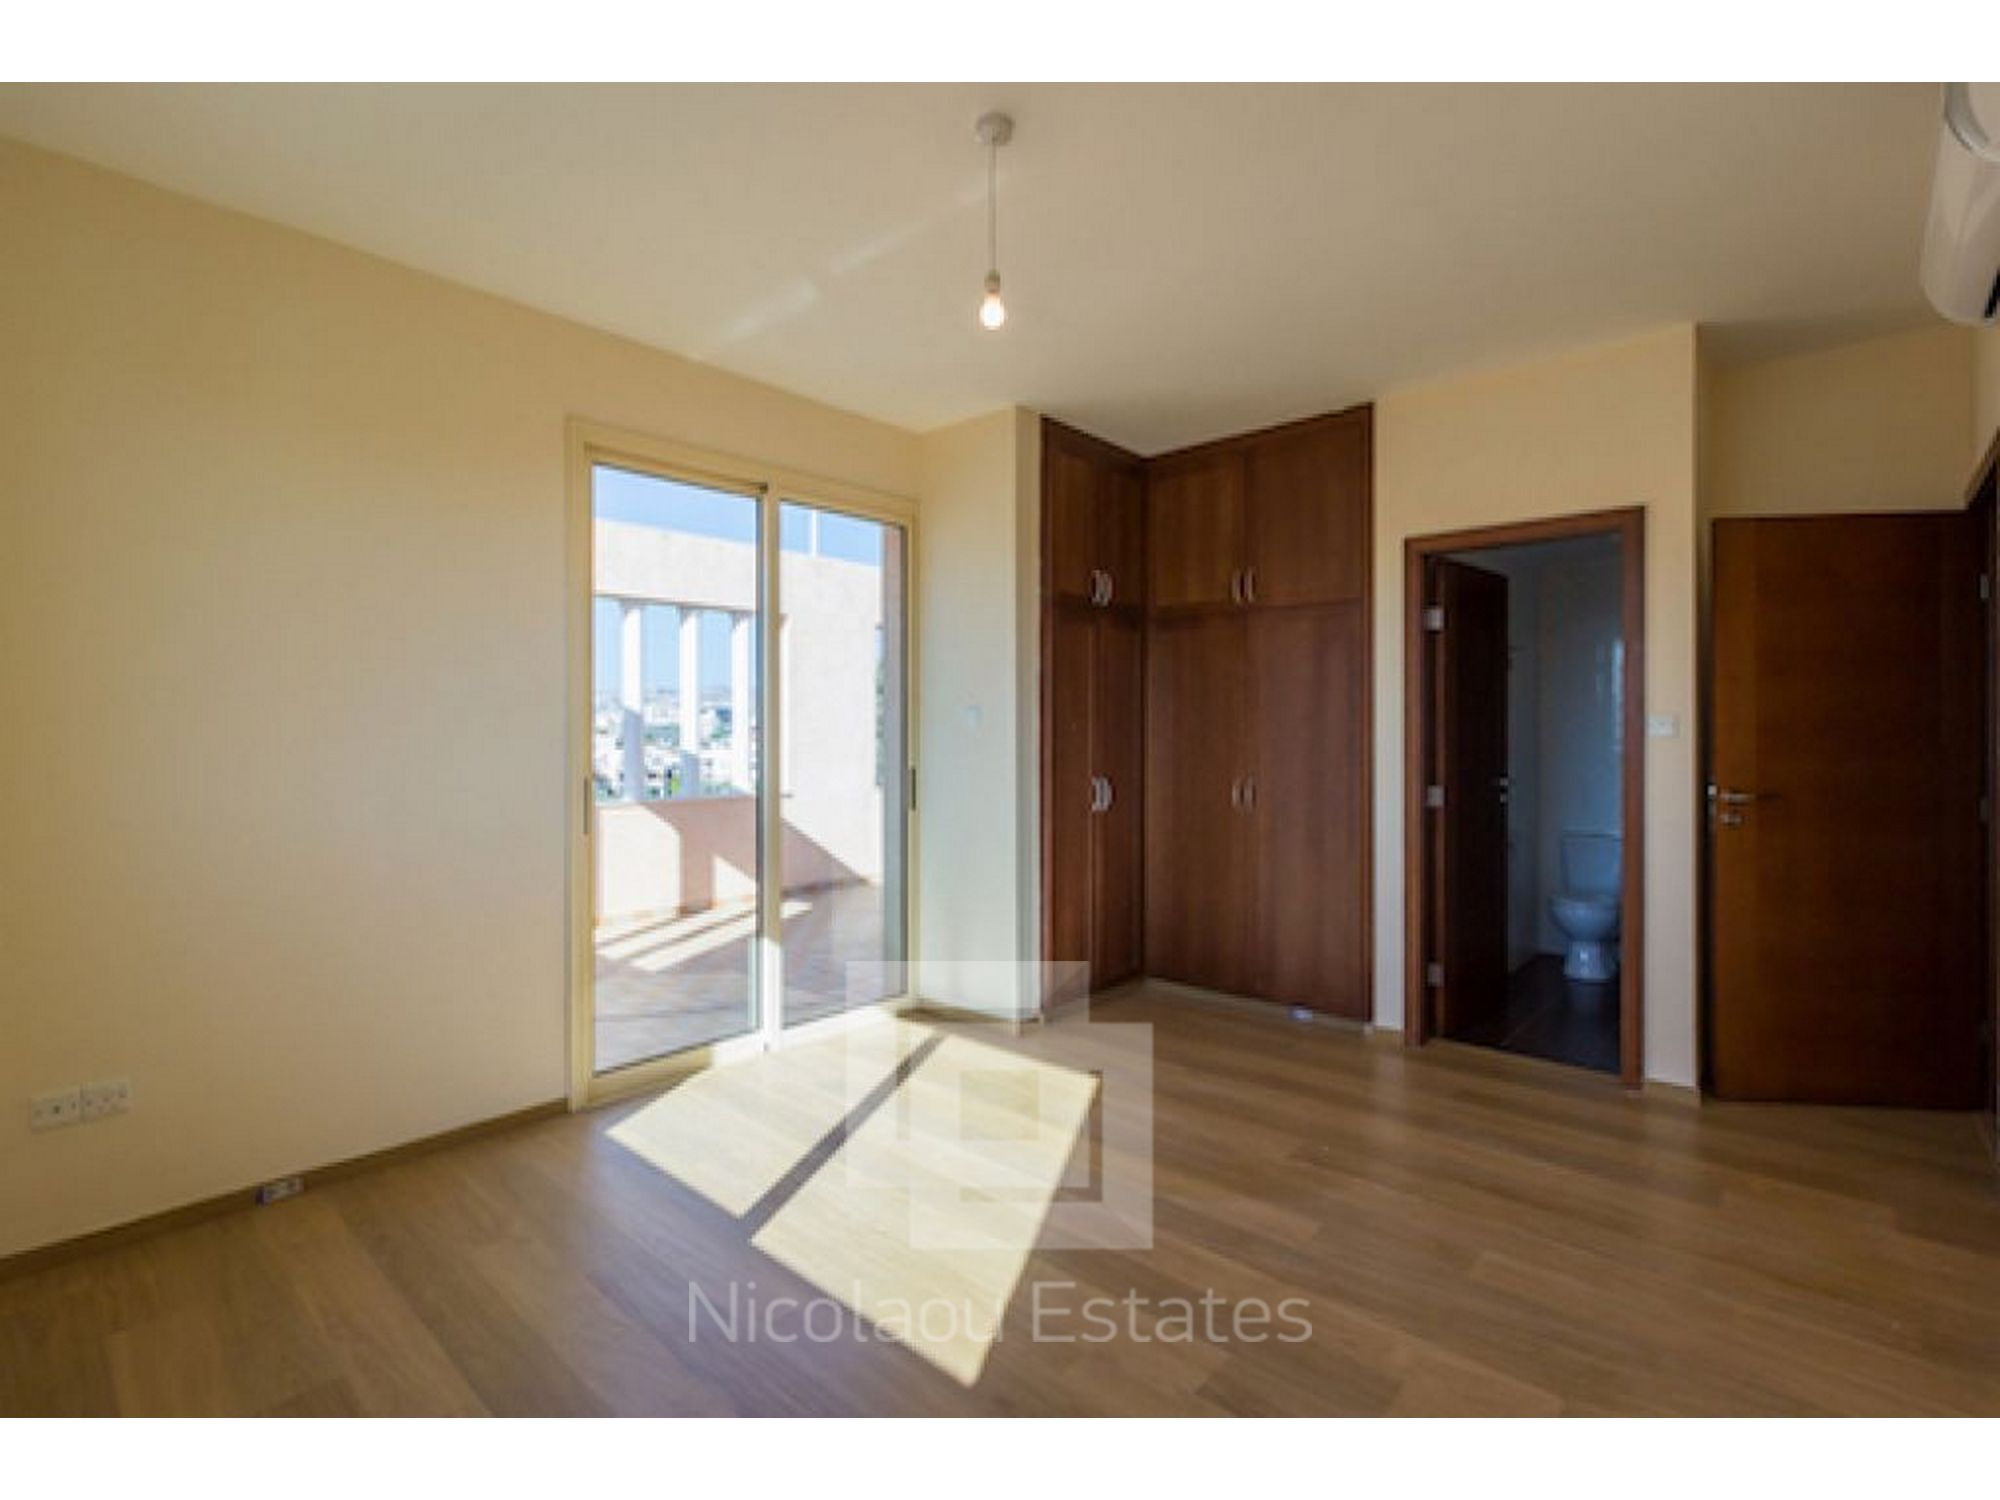 Archived luxury 4 bedroom penthouse apartment in for 4 bedroom luxury apartments